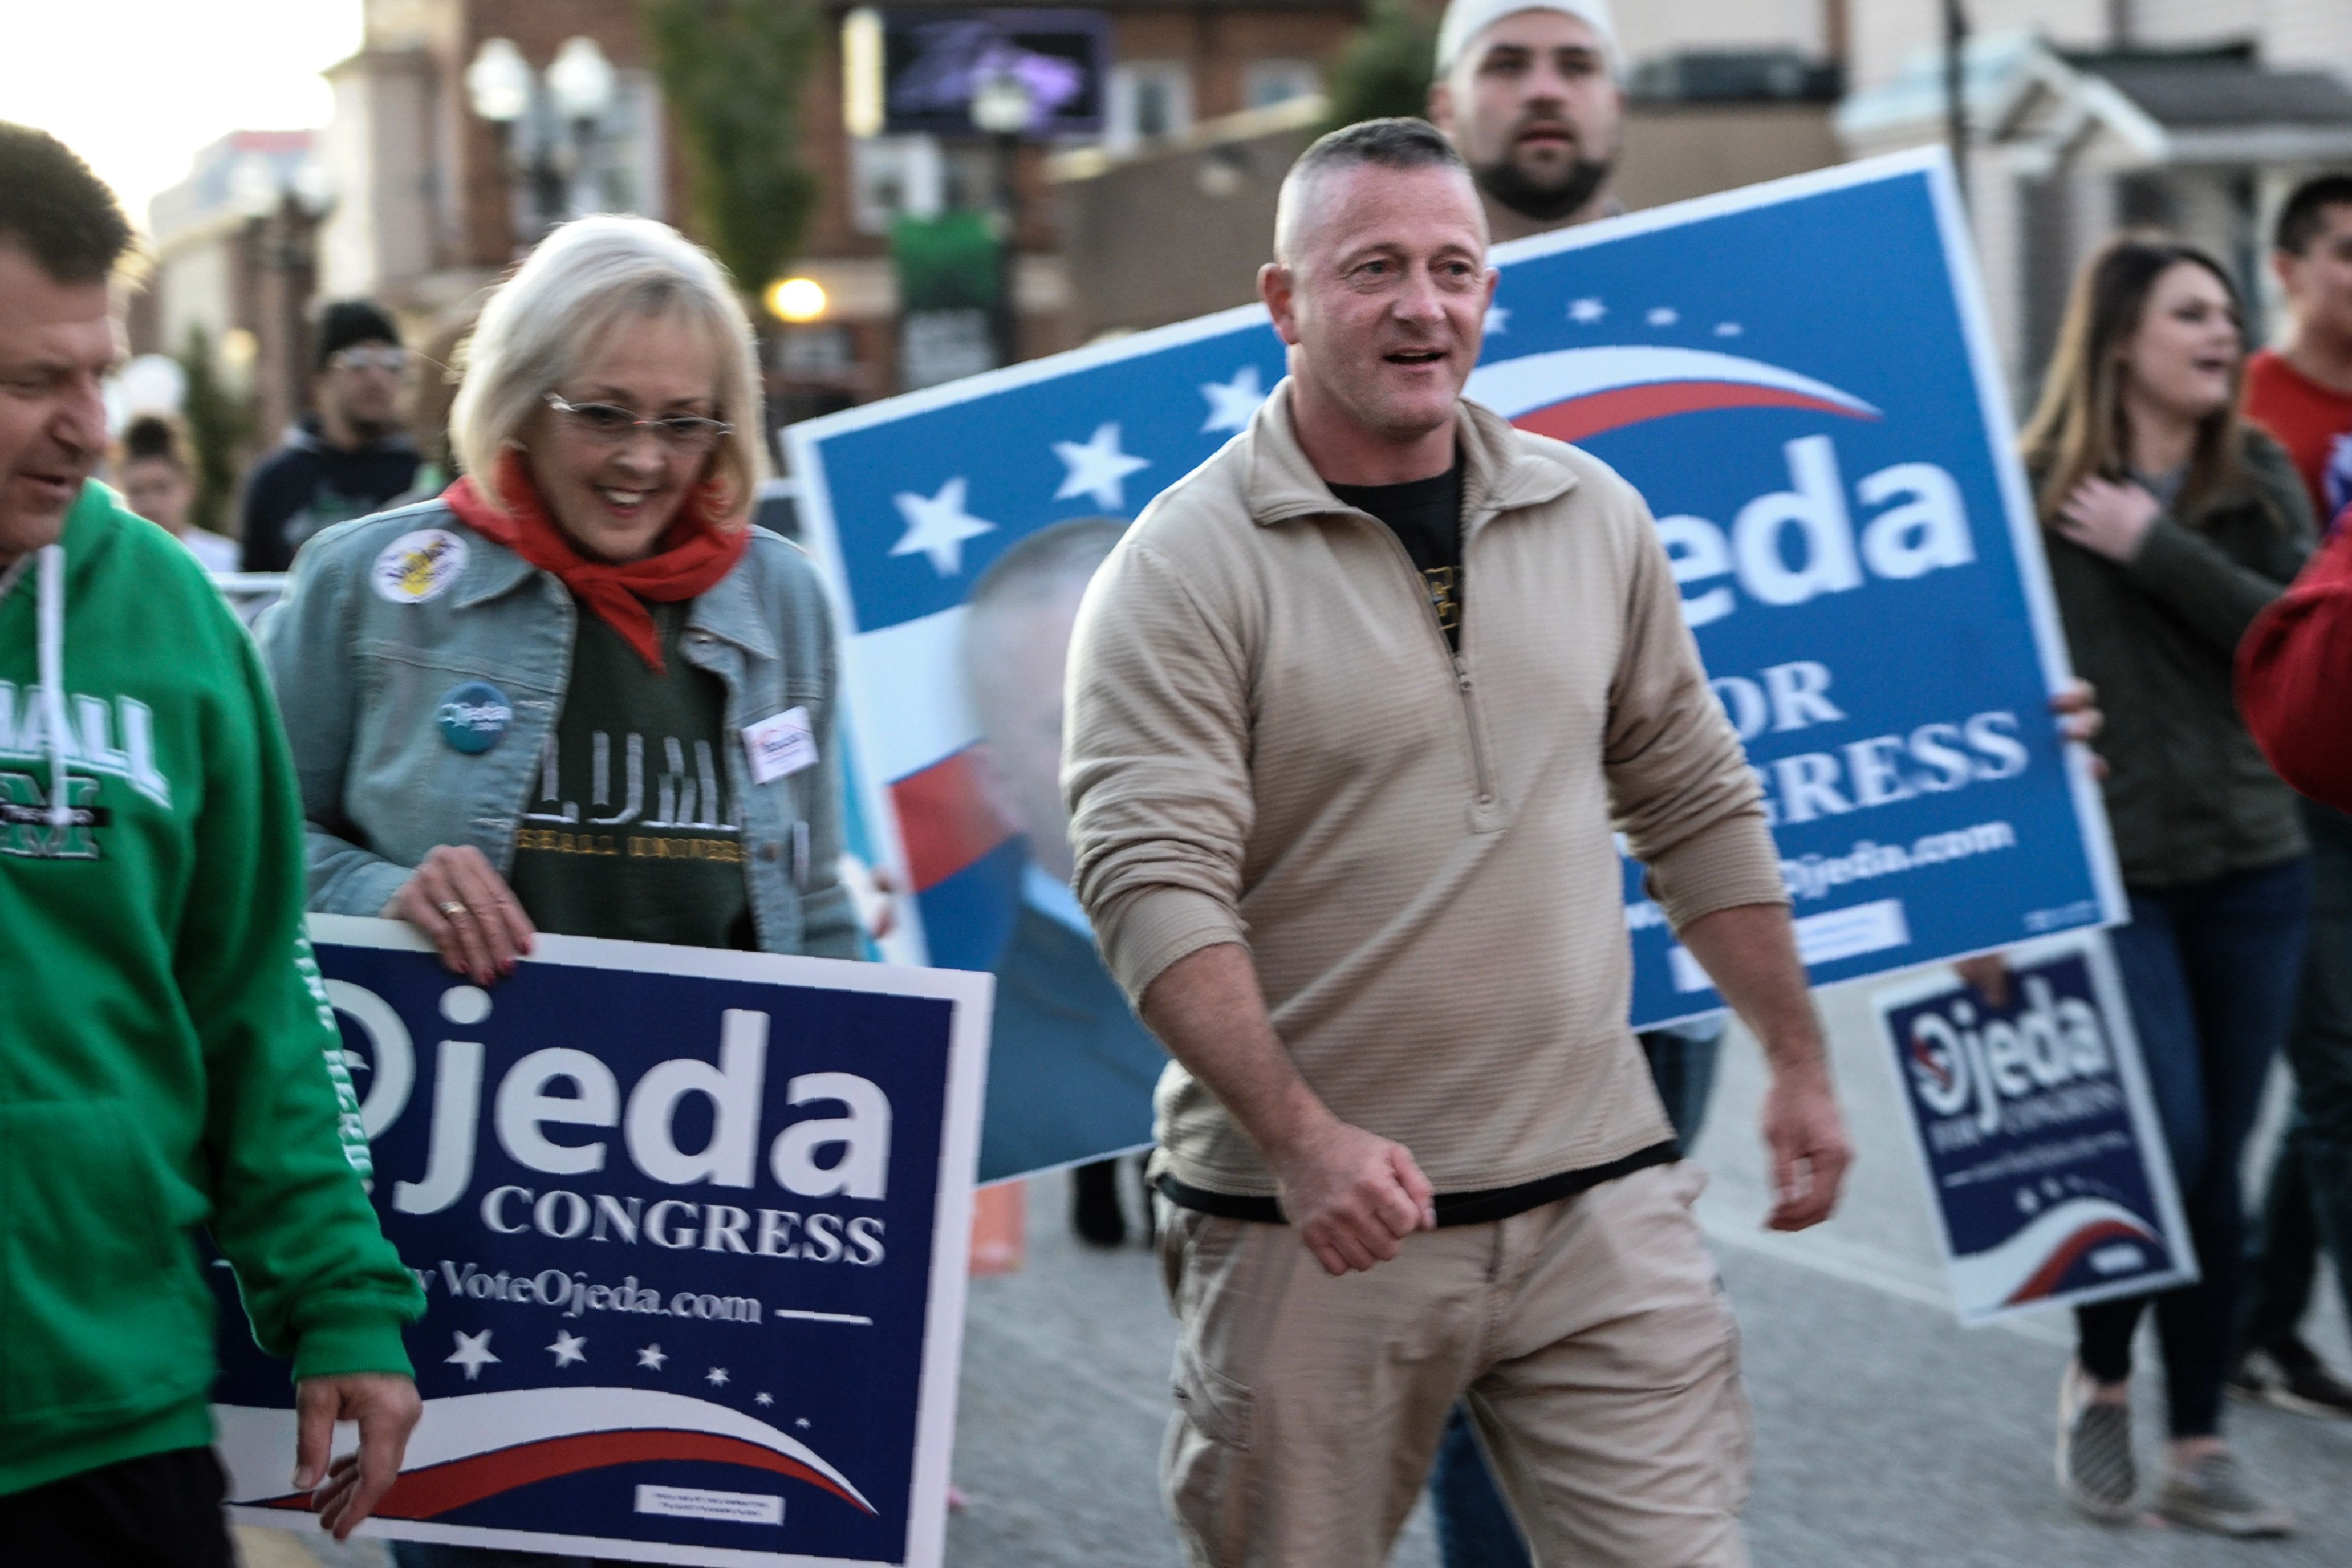 West Virginia state senator Richard Ojeda last week lost his congressional run to Republican Carol Miller, who was endorsed b